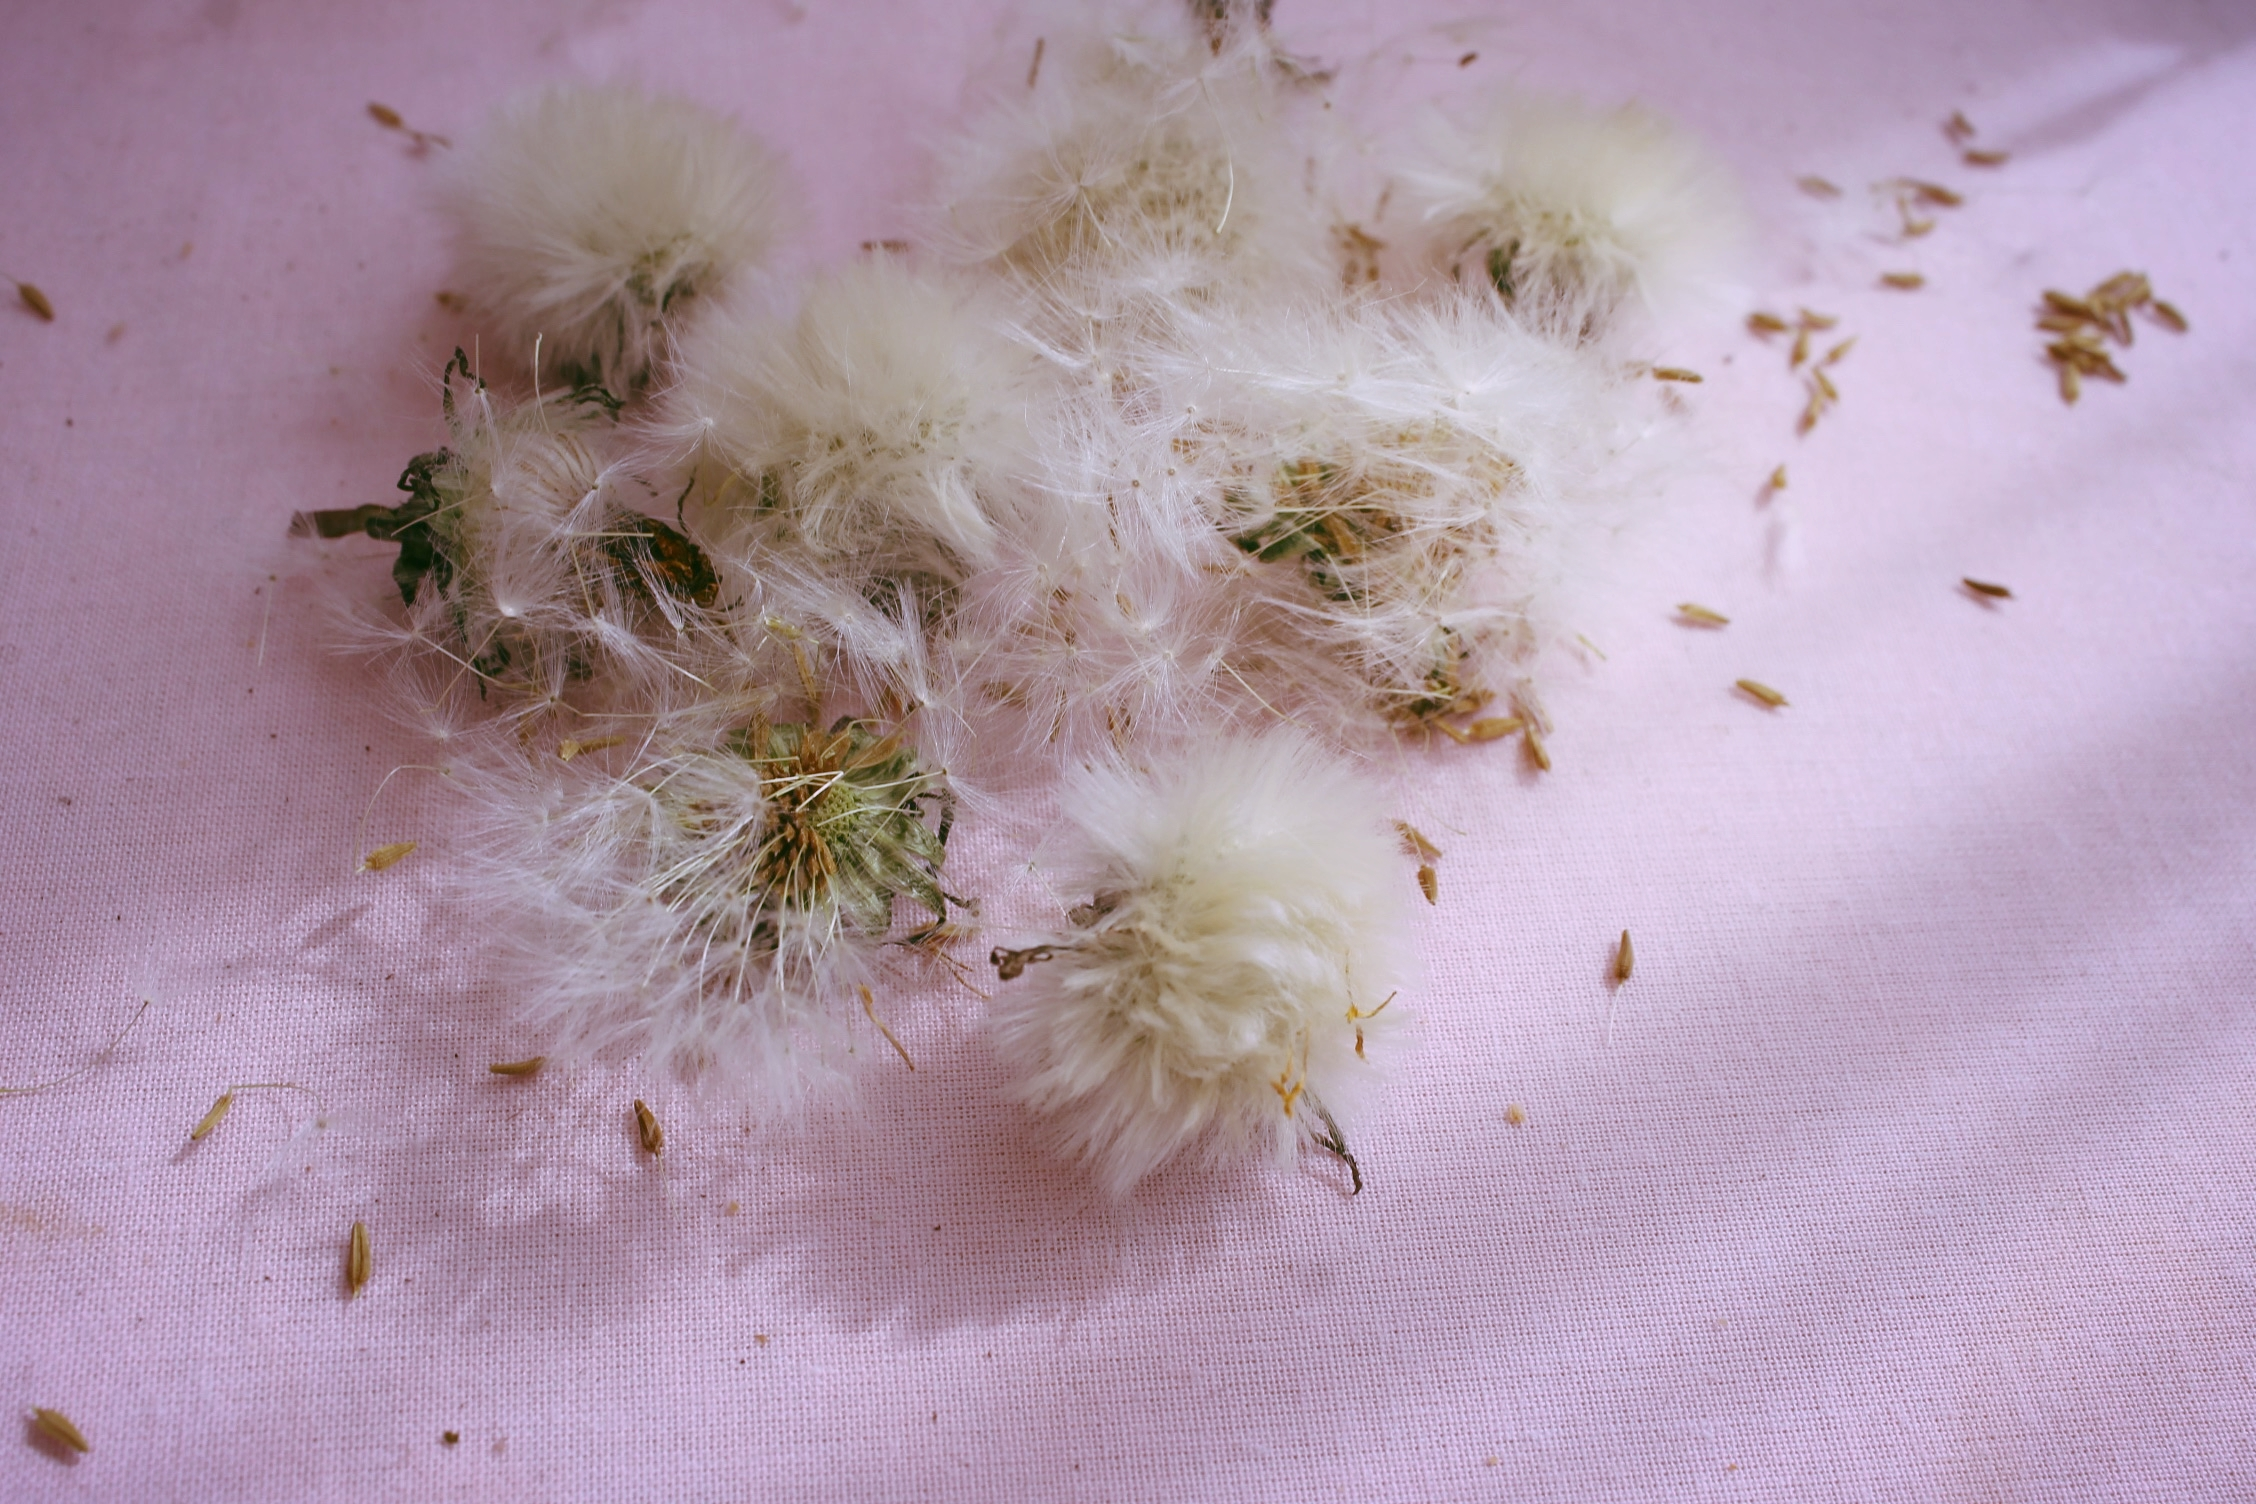 After picking and drying out the roots, I am left with these lovely seed heads, aren't they pretty?